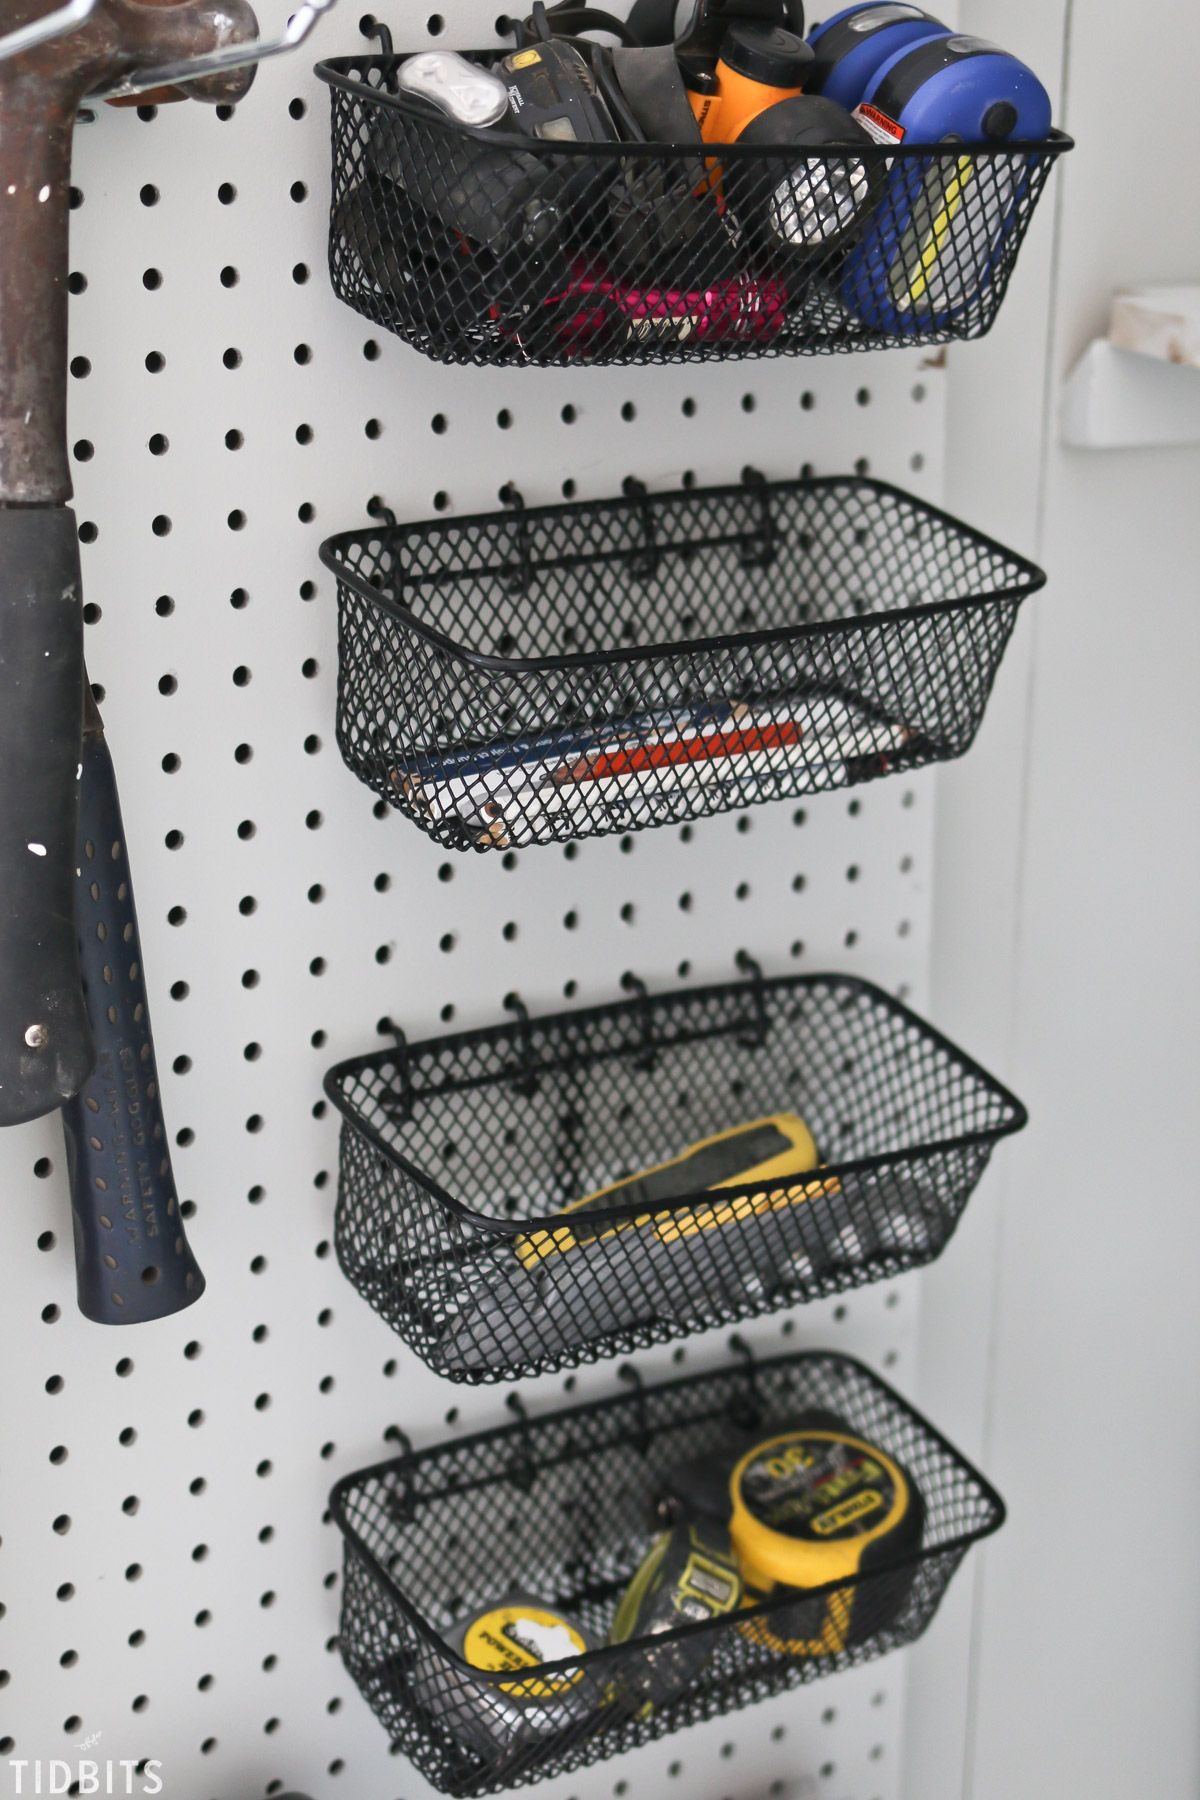 Garage Tool Storage and Organization Ideas - Tidbits